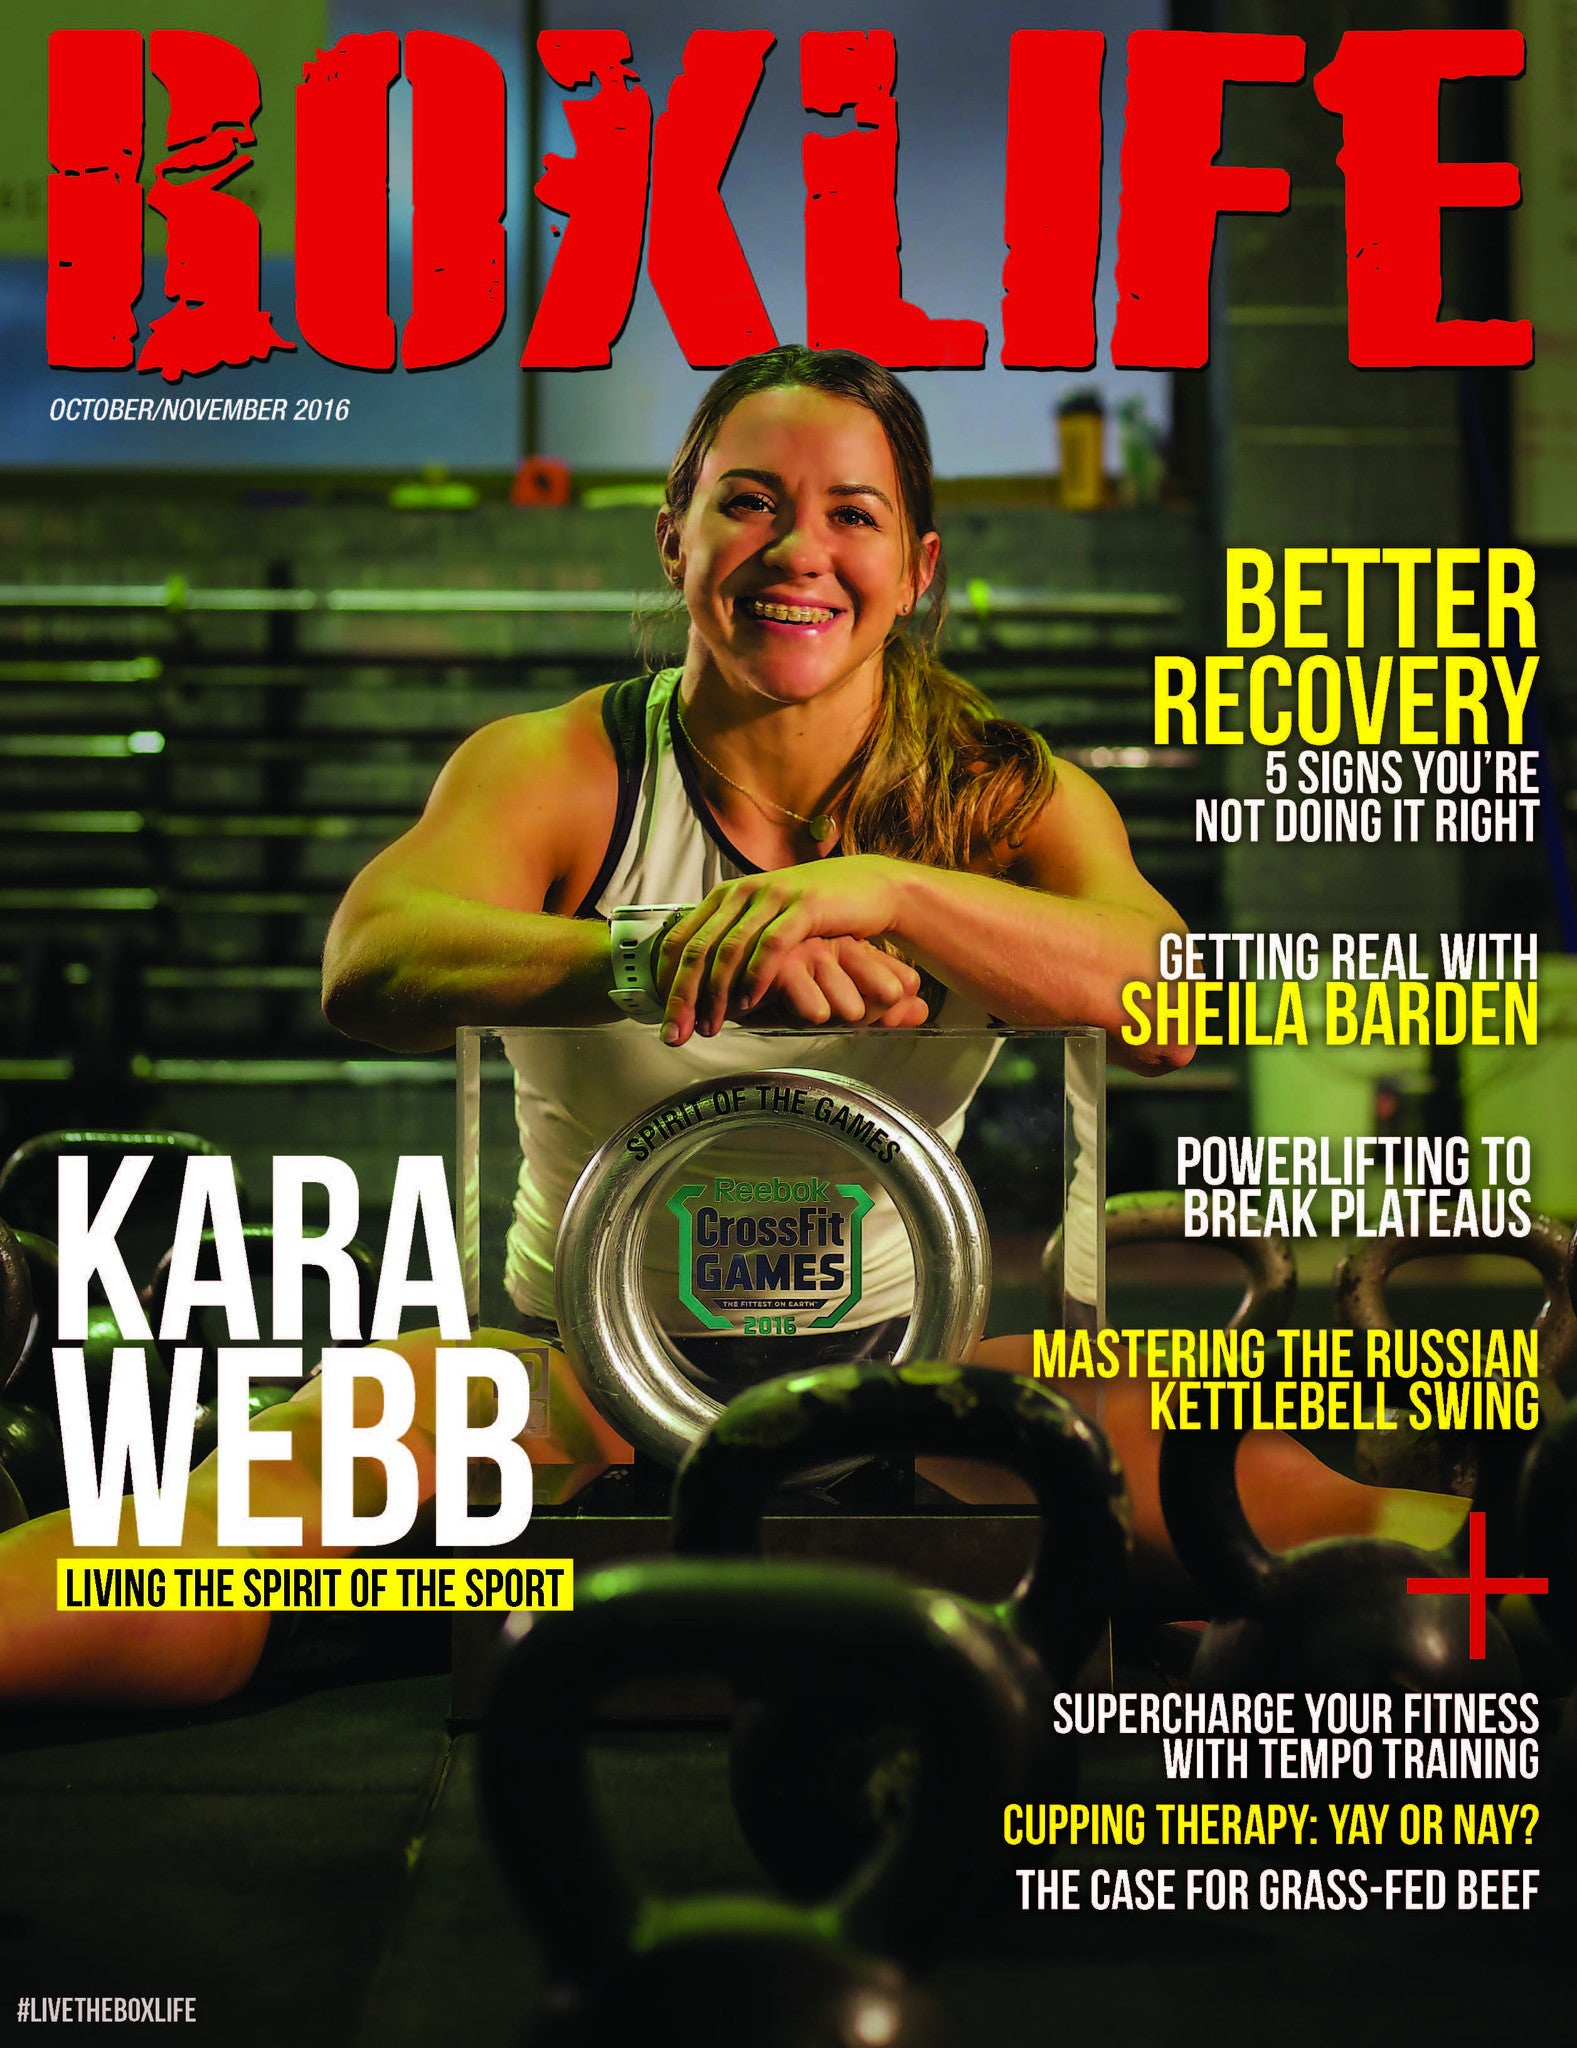 Kara Webb (Oct/Nov 2016)